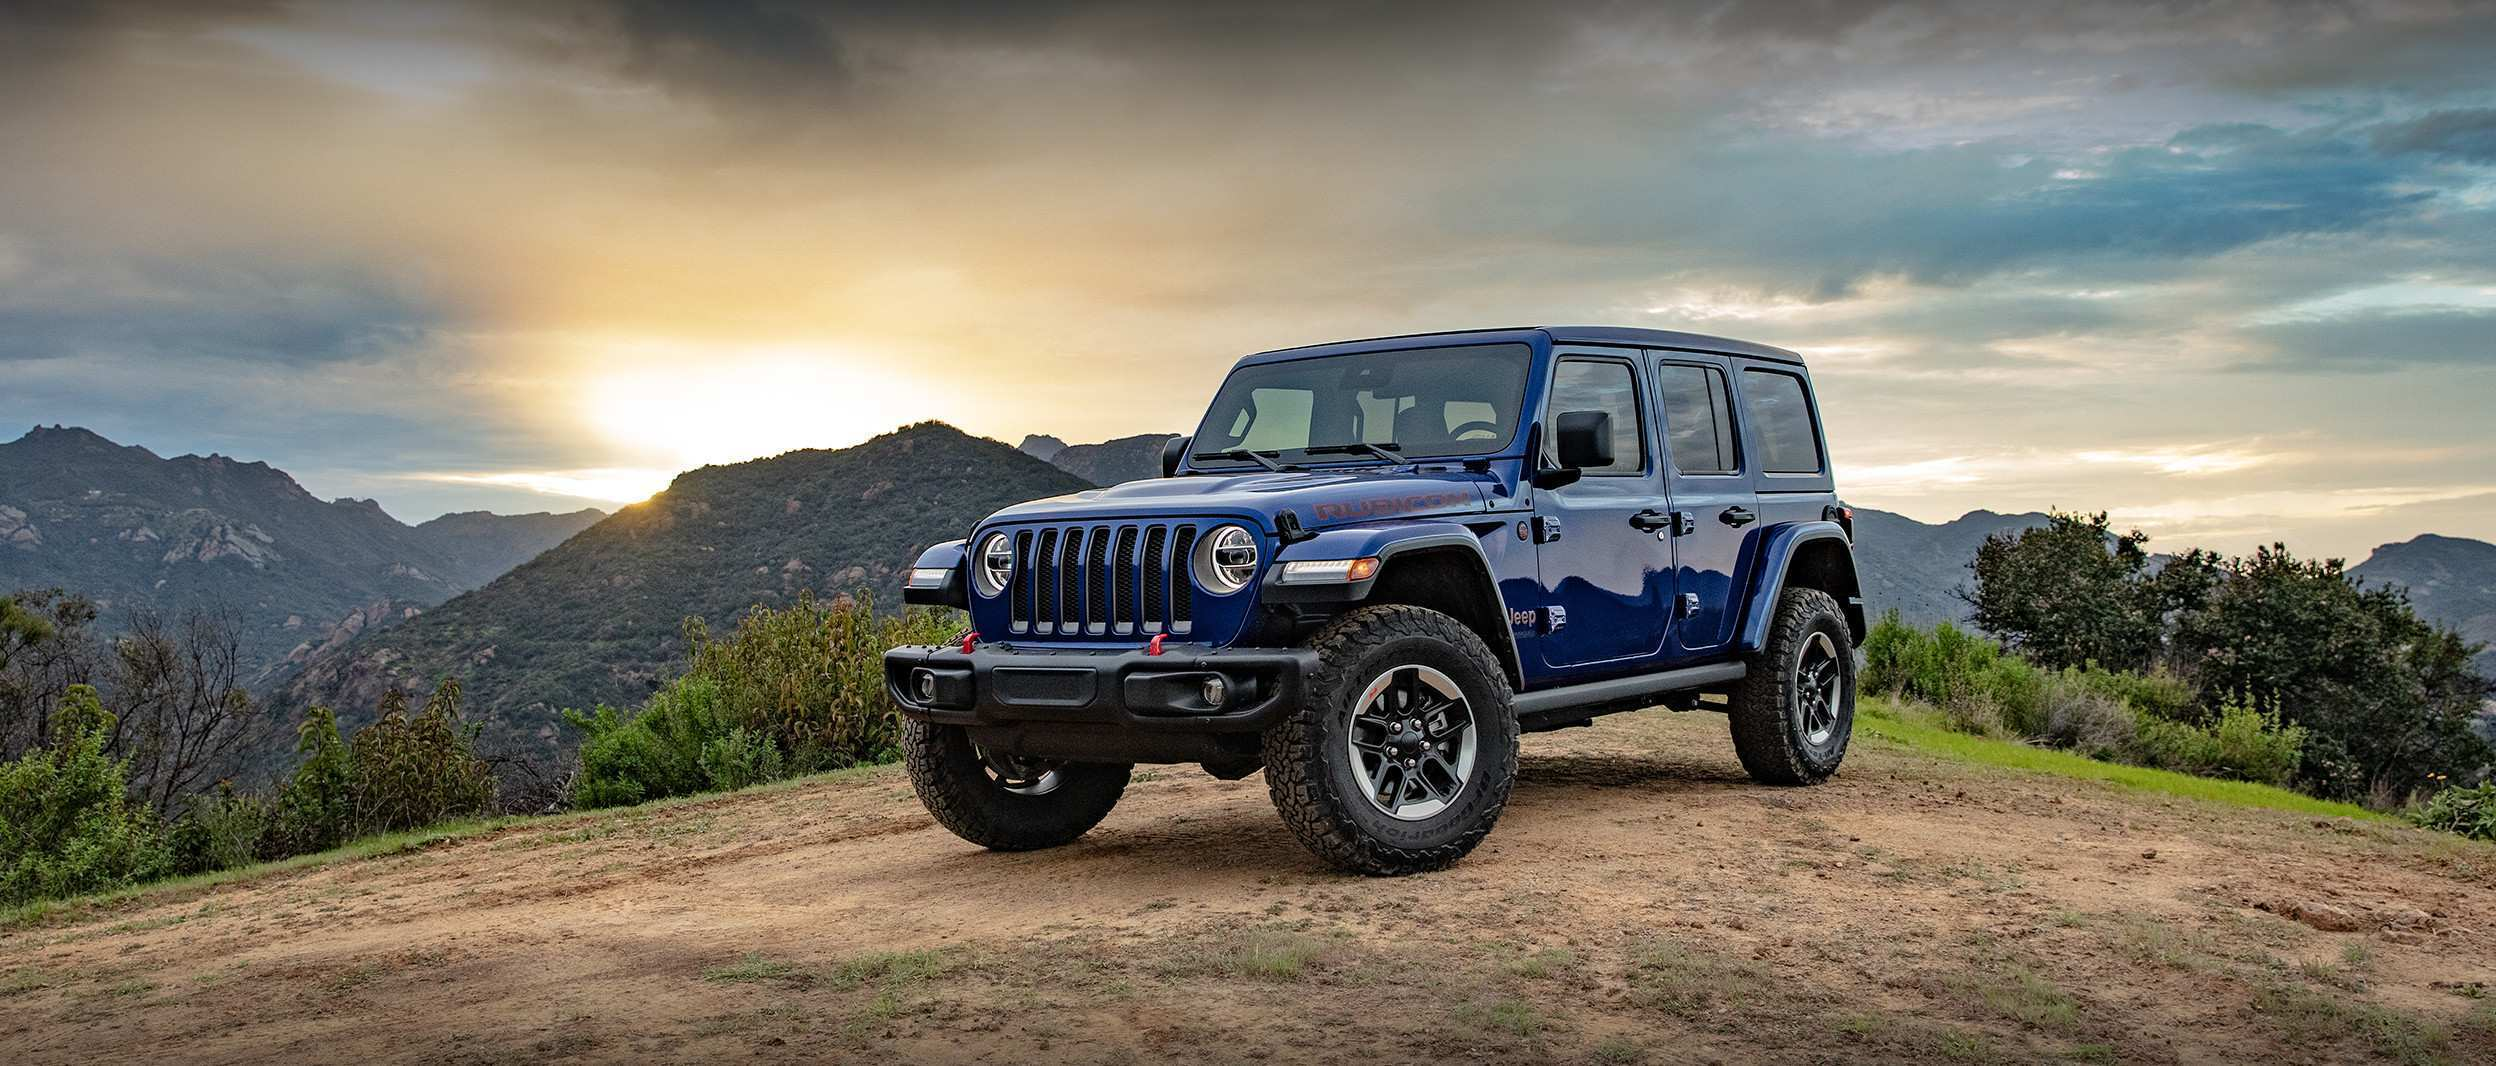 11 All New Best Jeep 2019 Orders Price And Release Date Images for Best Jeep 2019 Orders Price And Release Date